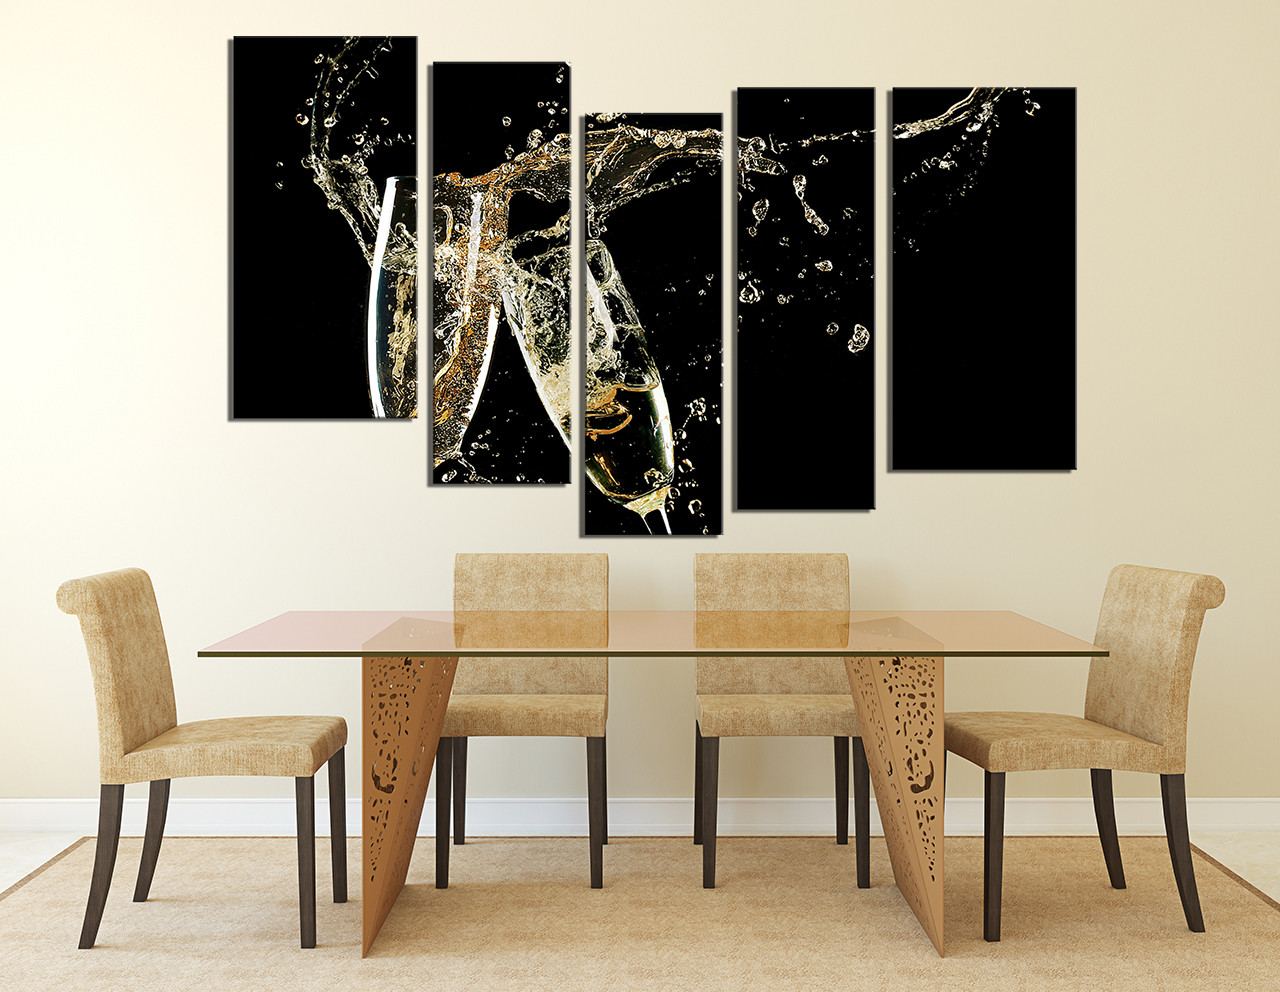 5 Piece Wall Art, Home Decor, Dining Room Wall Decor, Kitchen Canvas Art